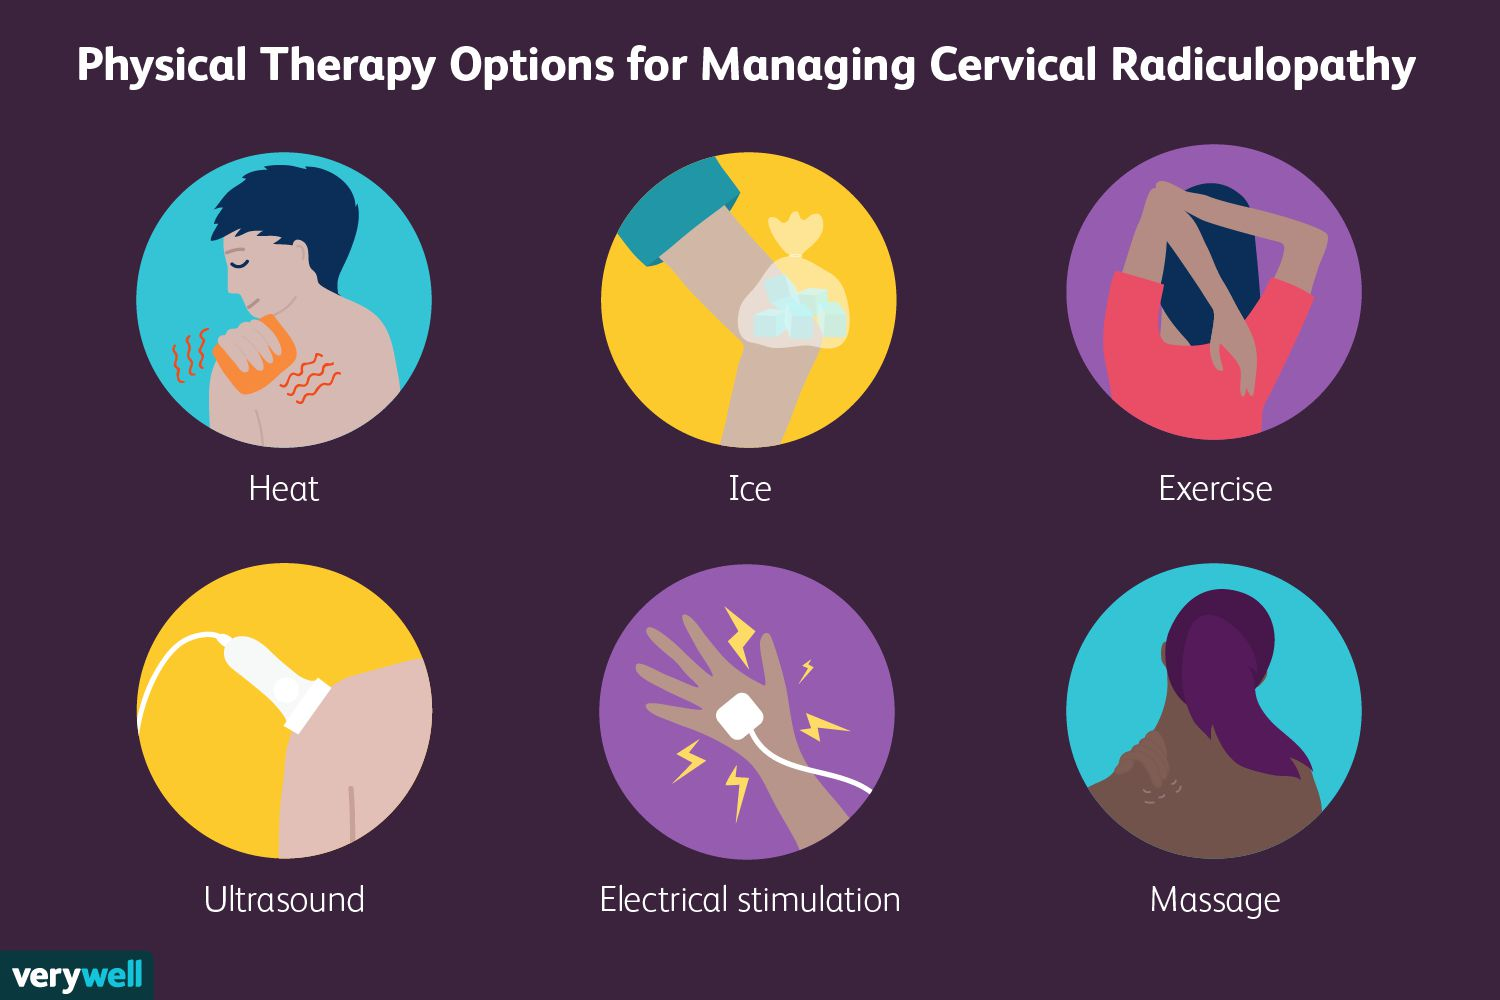 Physical Therapy Options for Managing Cervical Radiculopathy